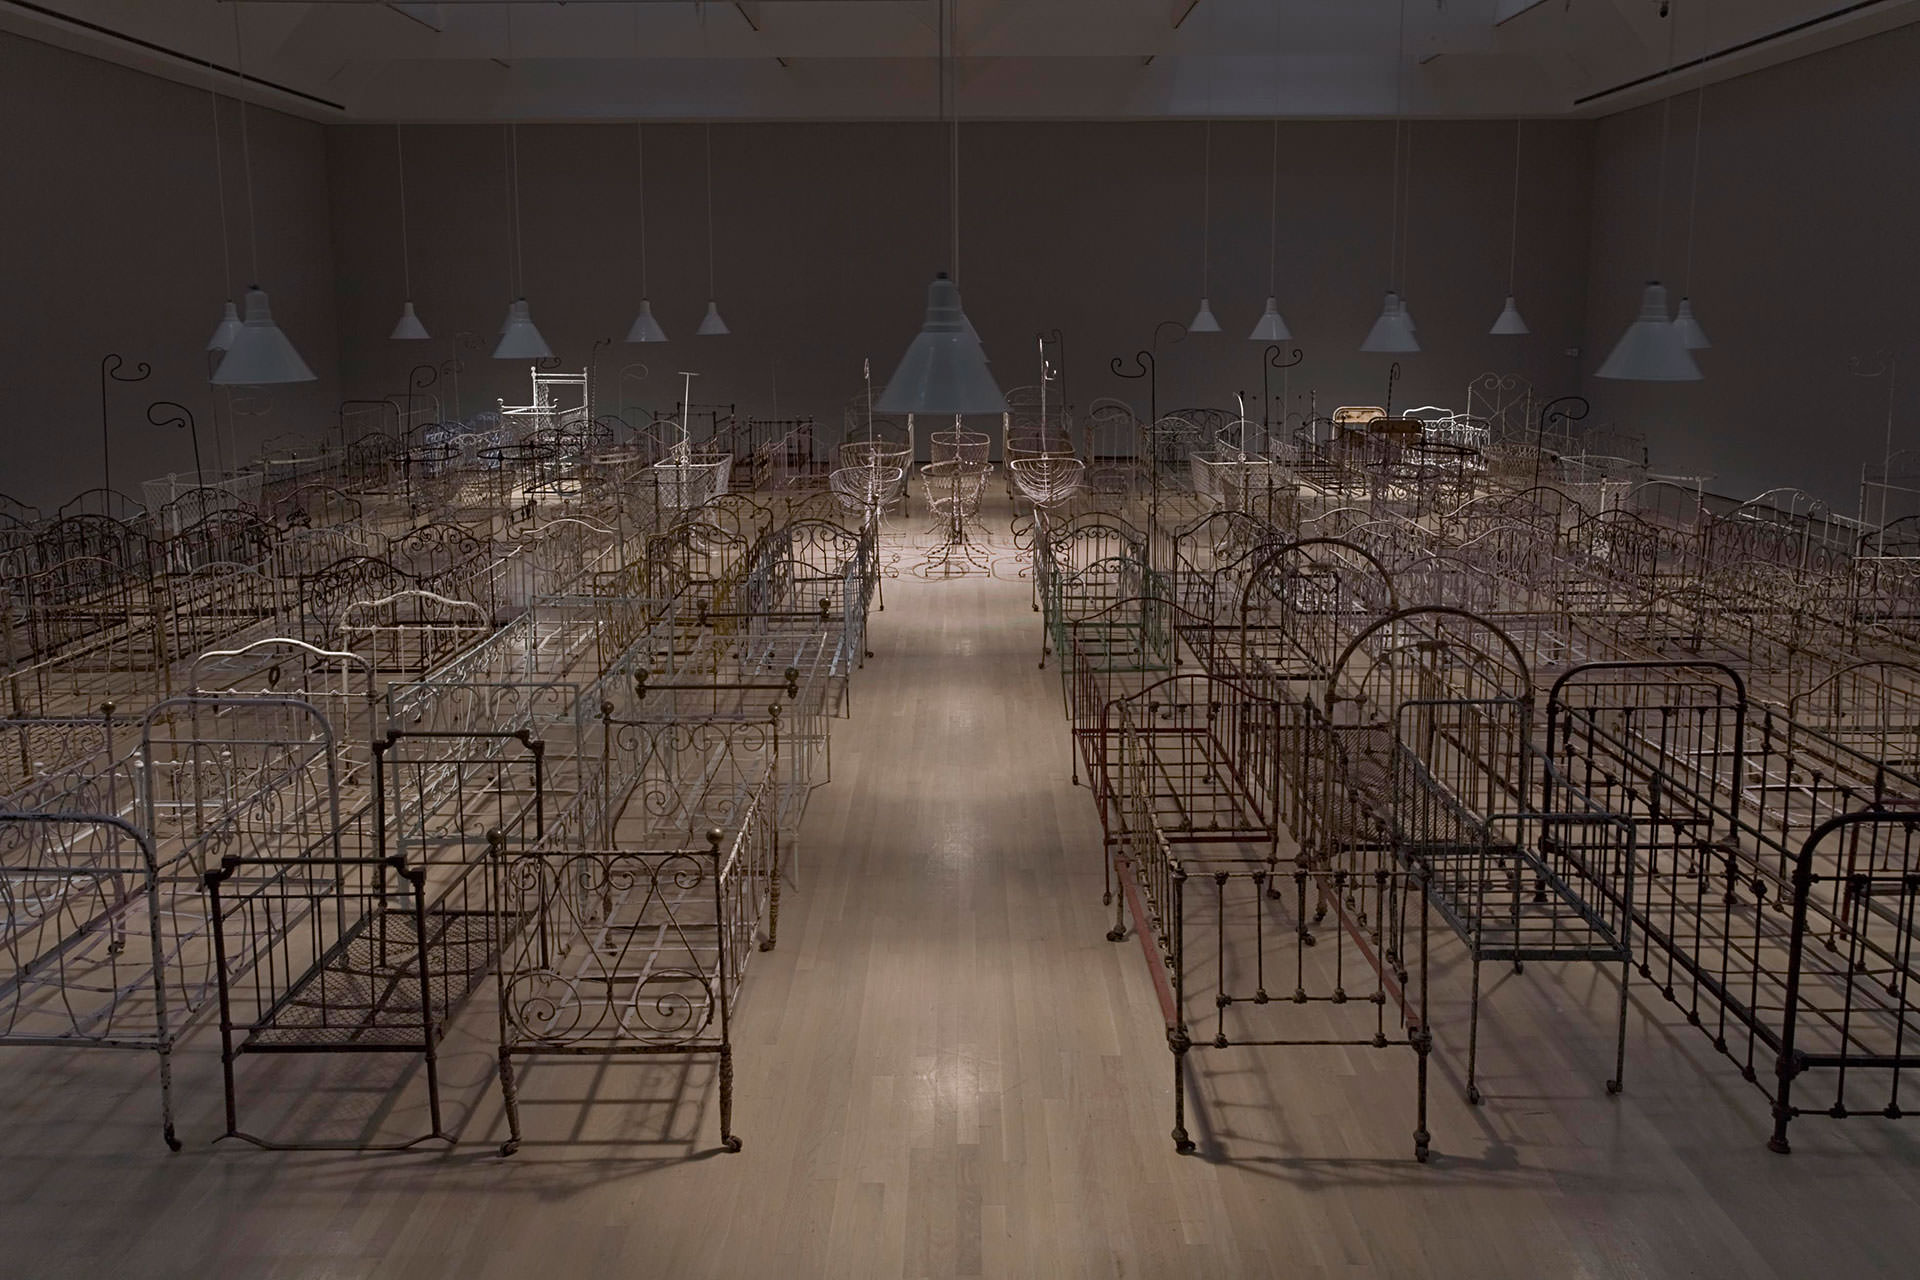 Le Jardin du Sommeil , 2009, 4000 square feet, 140 antique and vintage metal children's beds and cradles, collected in Canada and France. Musee d'art contemporain de Montreal collection